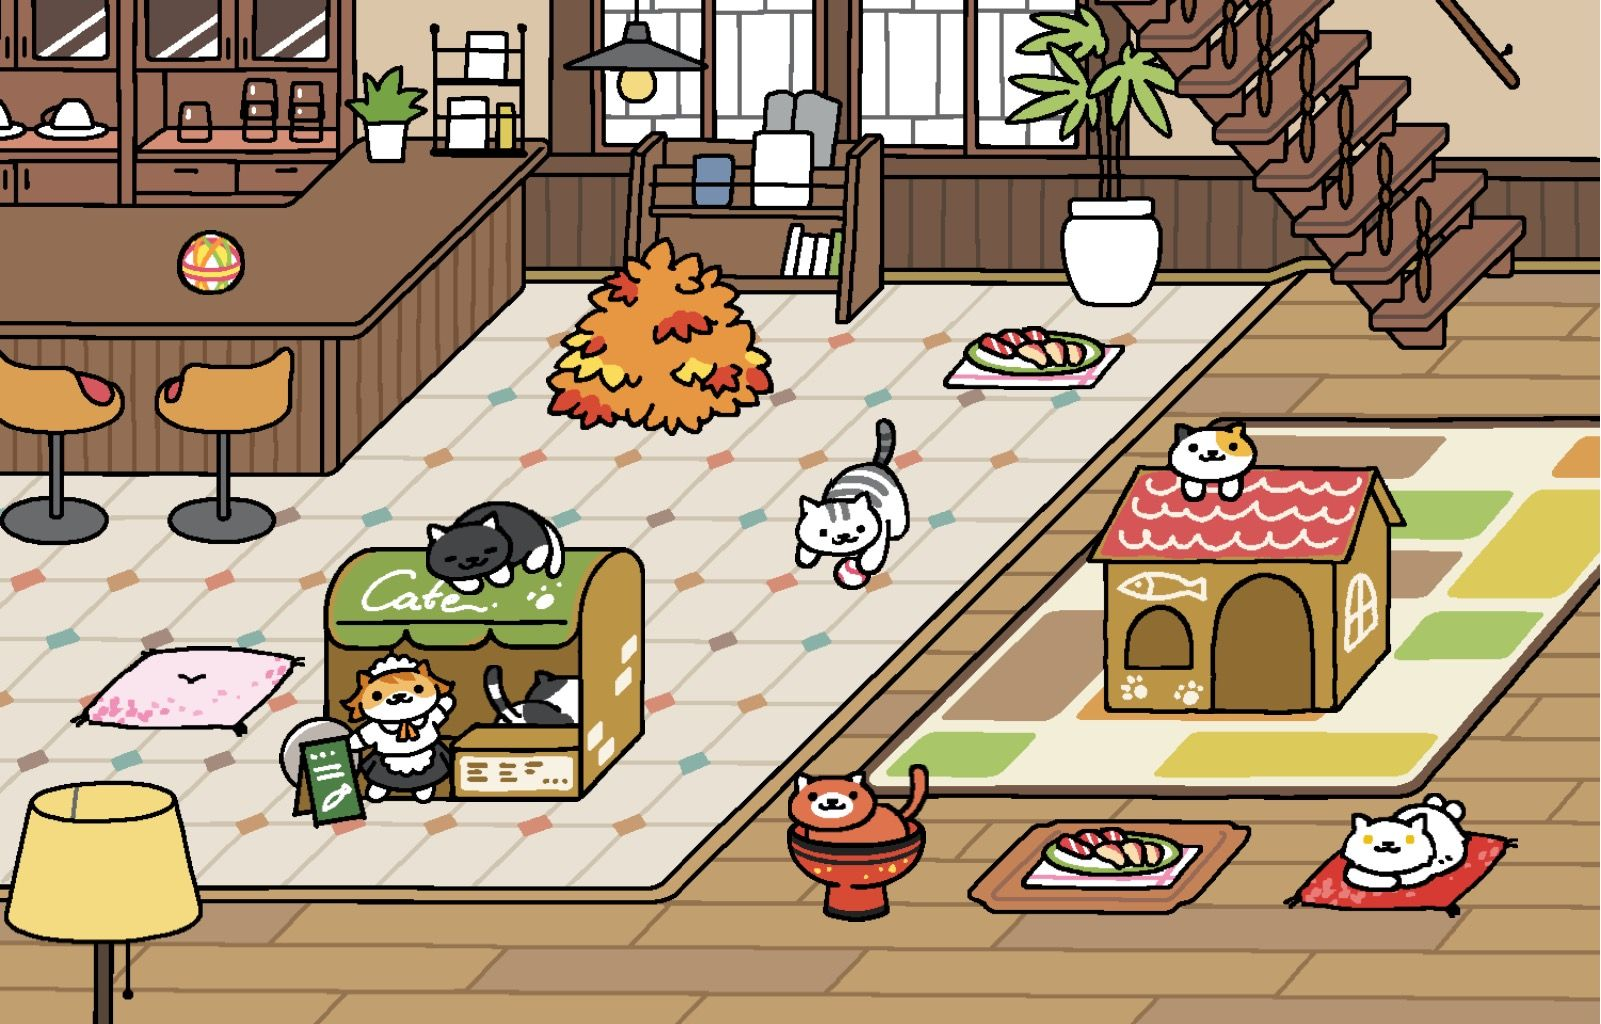 Pin by 레베카 체 on Neko Atsume Cafe Style Neko atsume, Cat